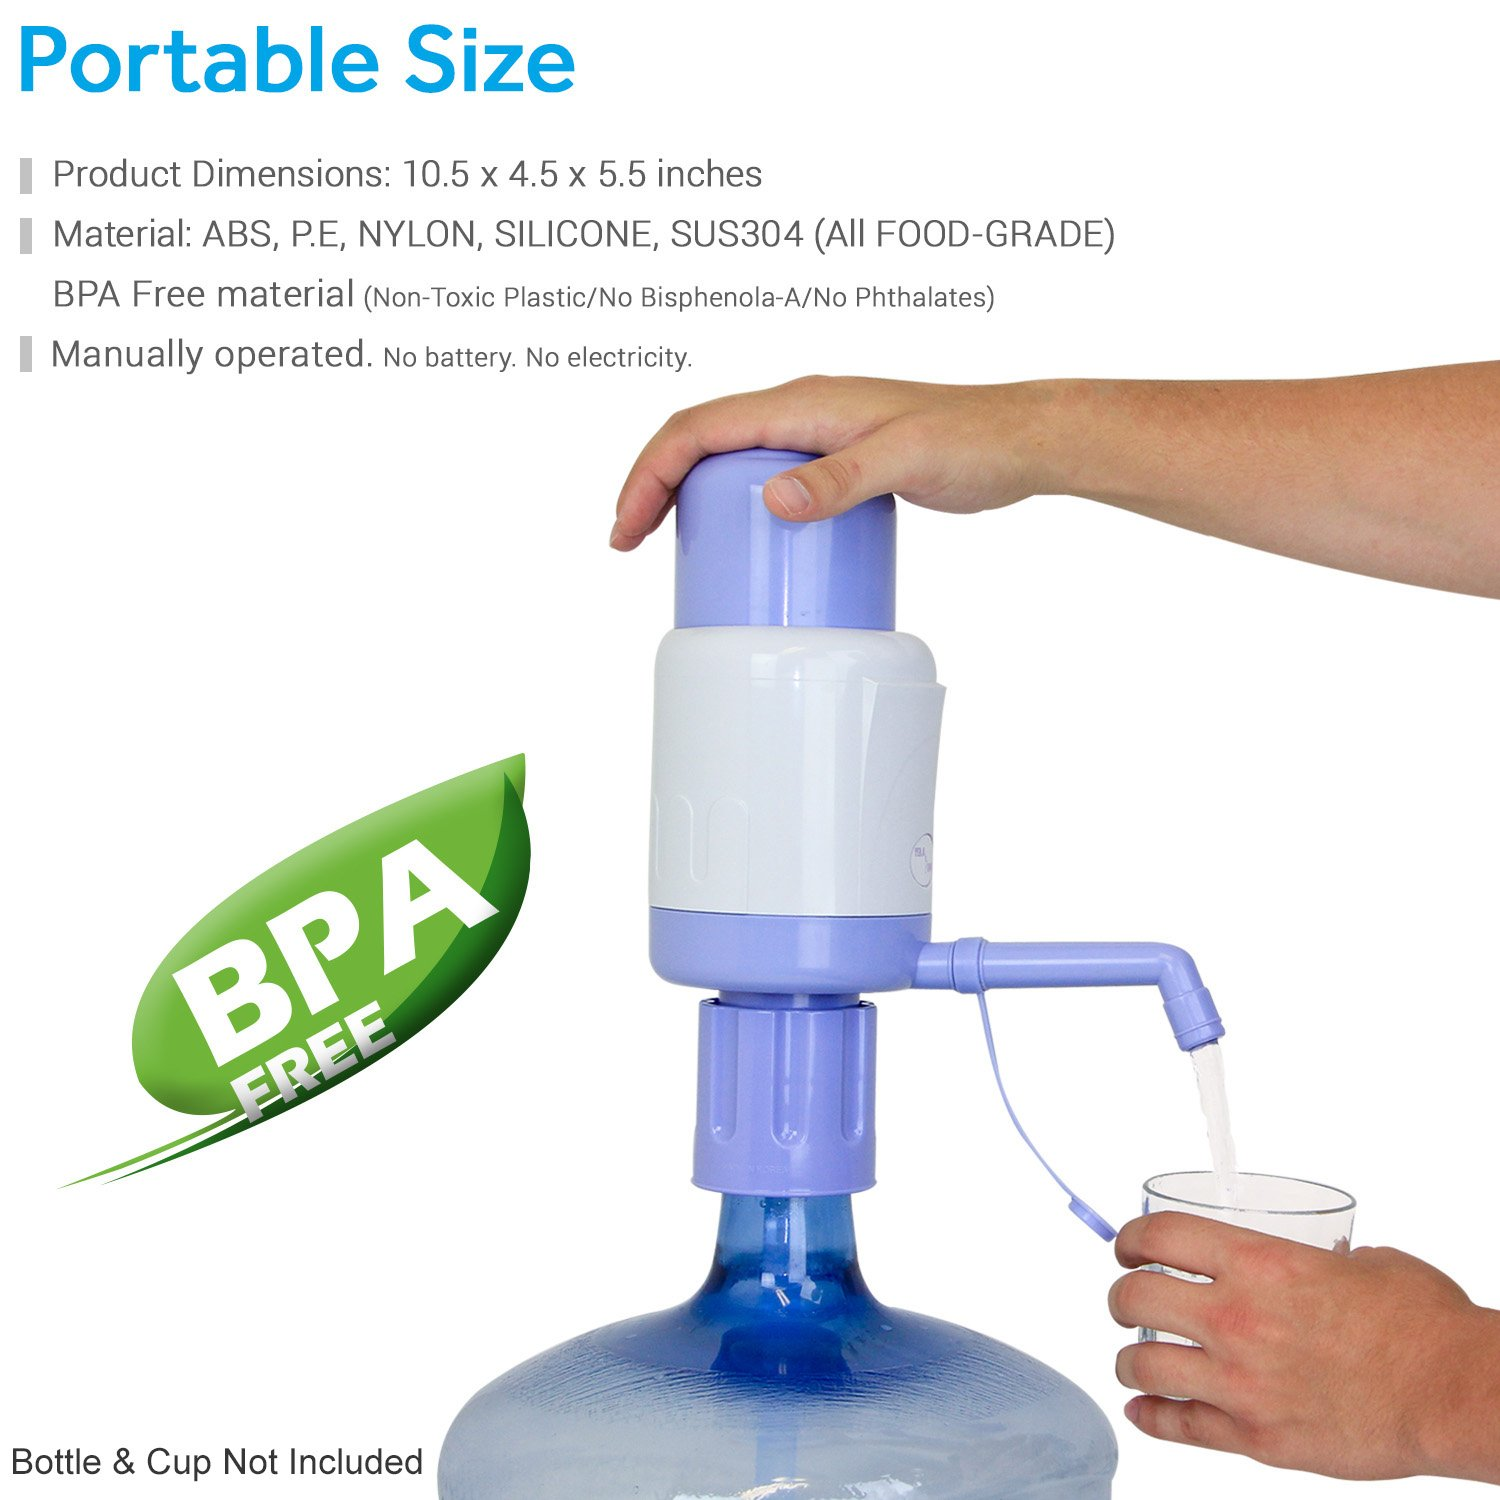 TERA PUMP Manual Drinking Water Pump, FITS Any Bottle (Except Glass Bottles) - BPA Free